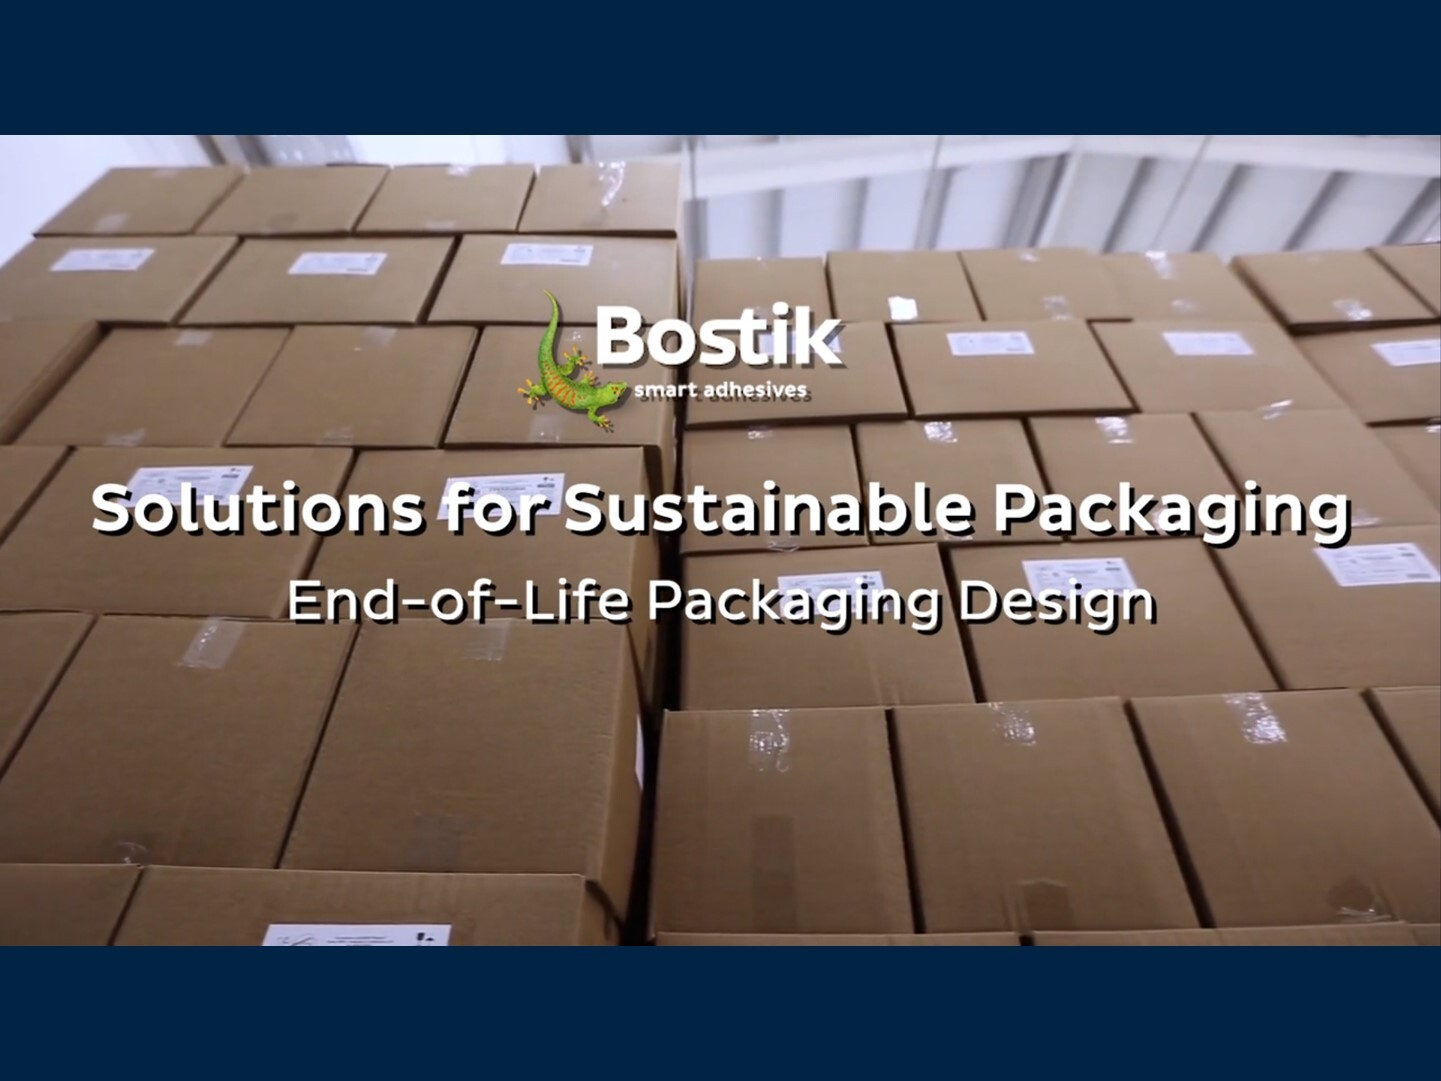 Solutions for Sustainable Packaging video thumbnail.jpg